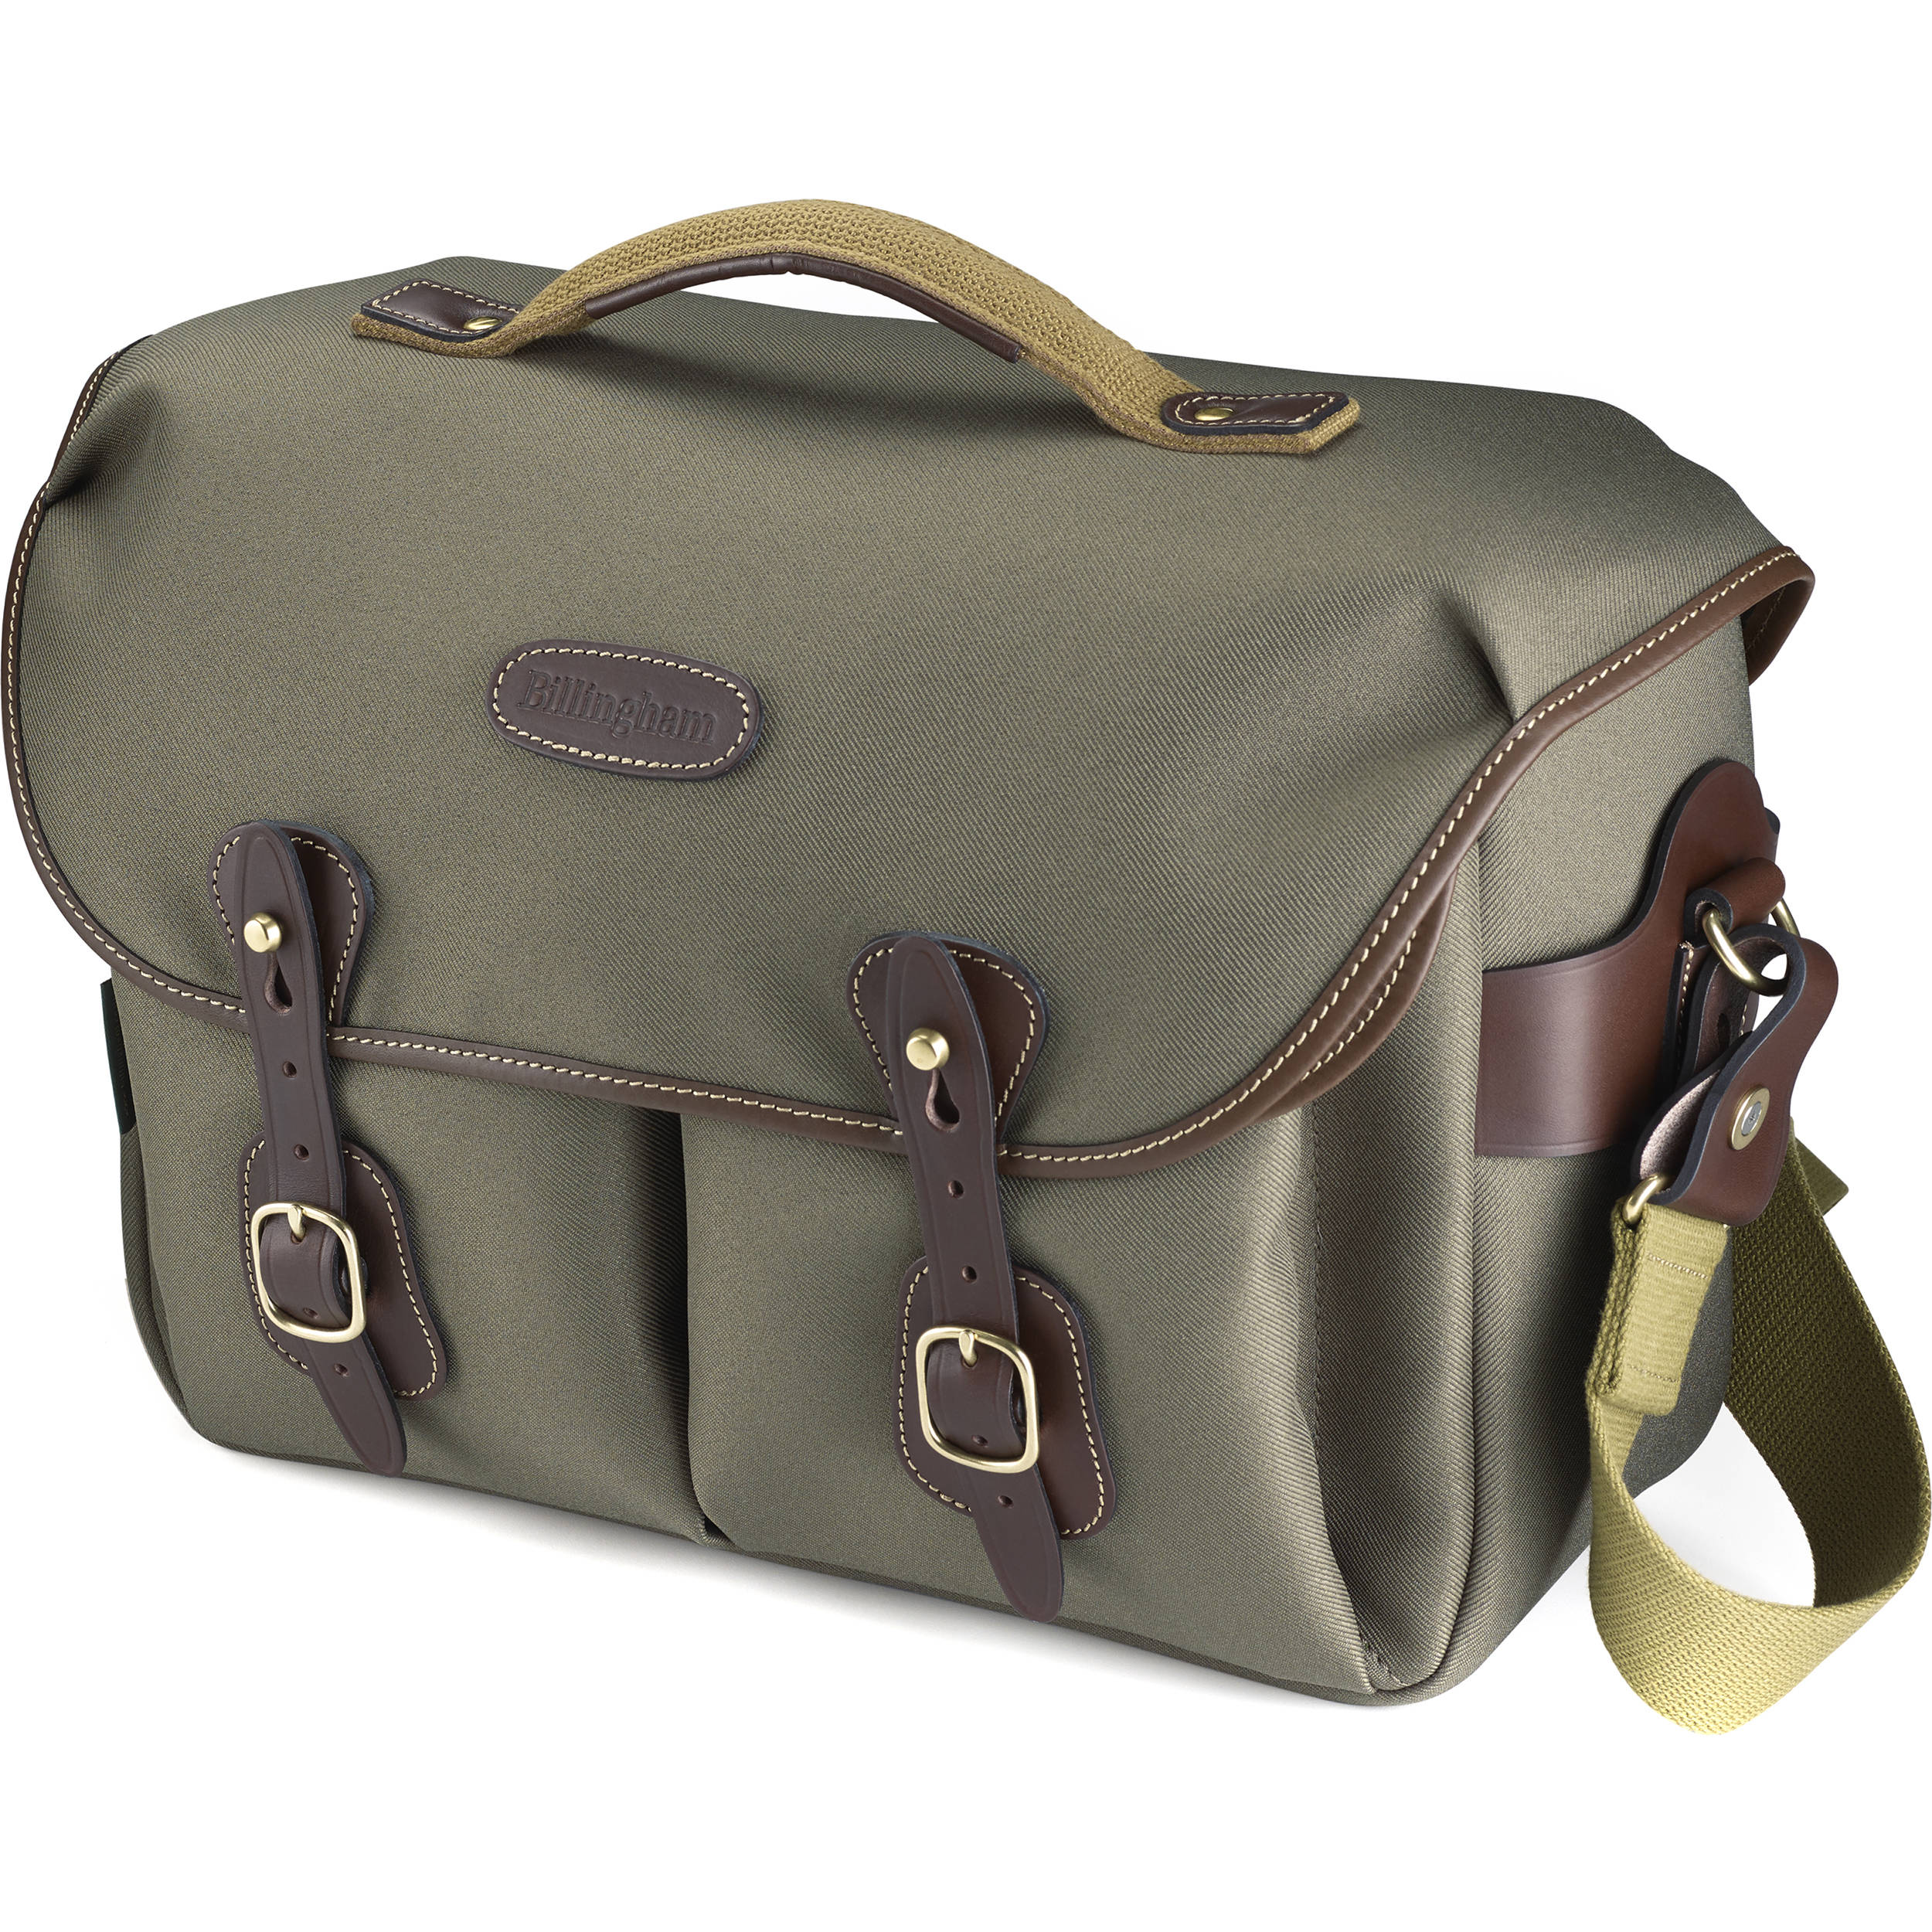 Billingham Hadley One Camera Bag Sage Fibrenyte With Chocolate Leather